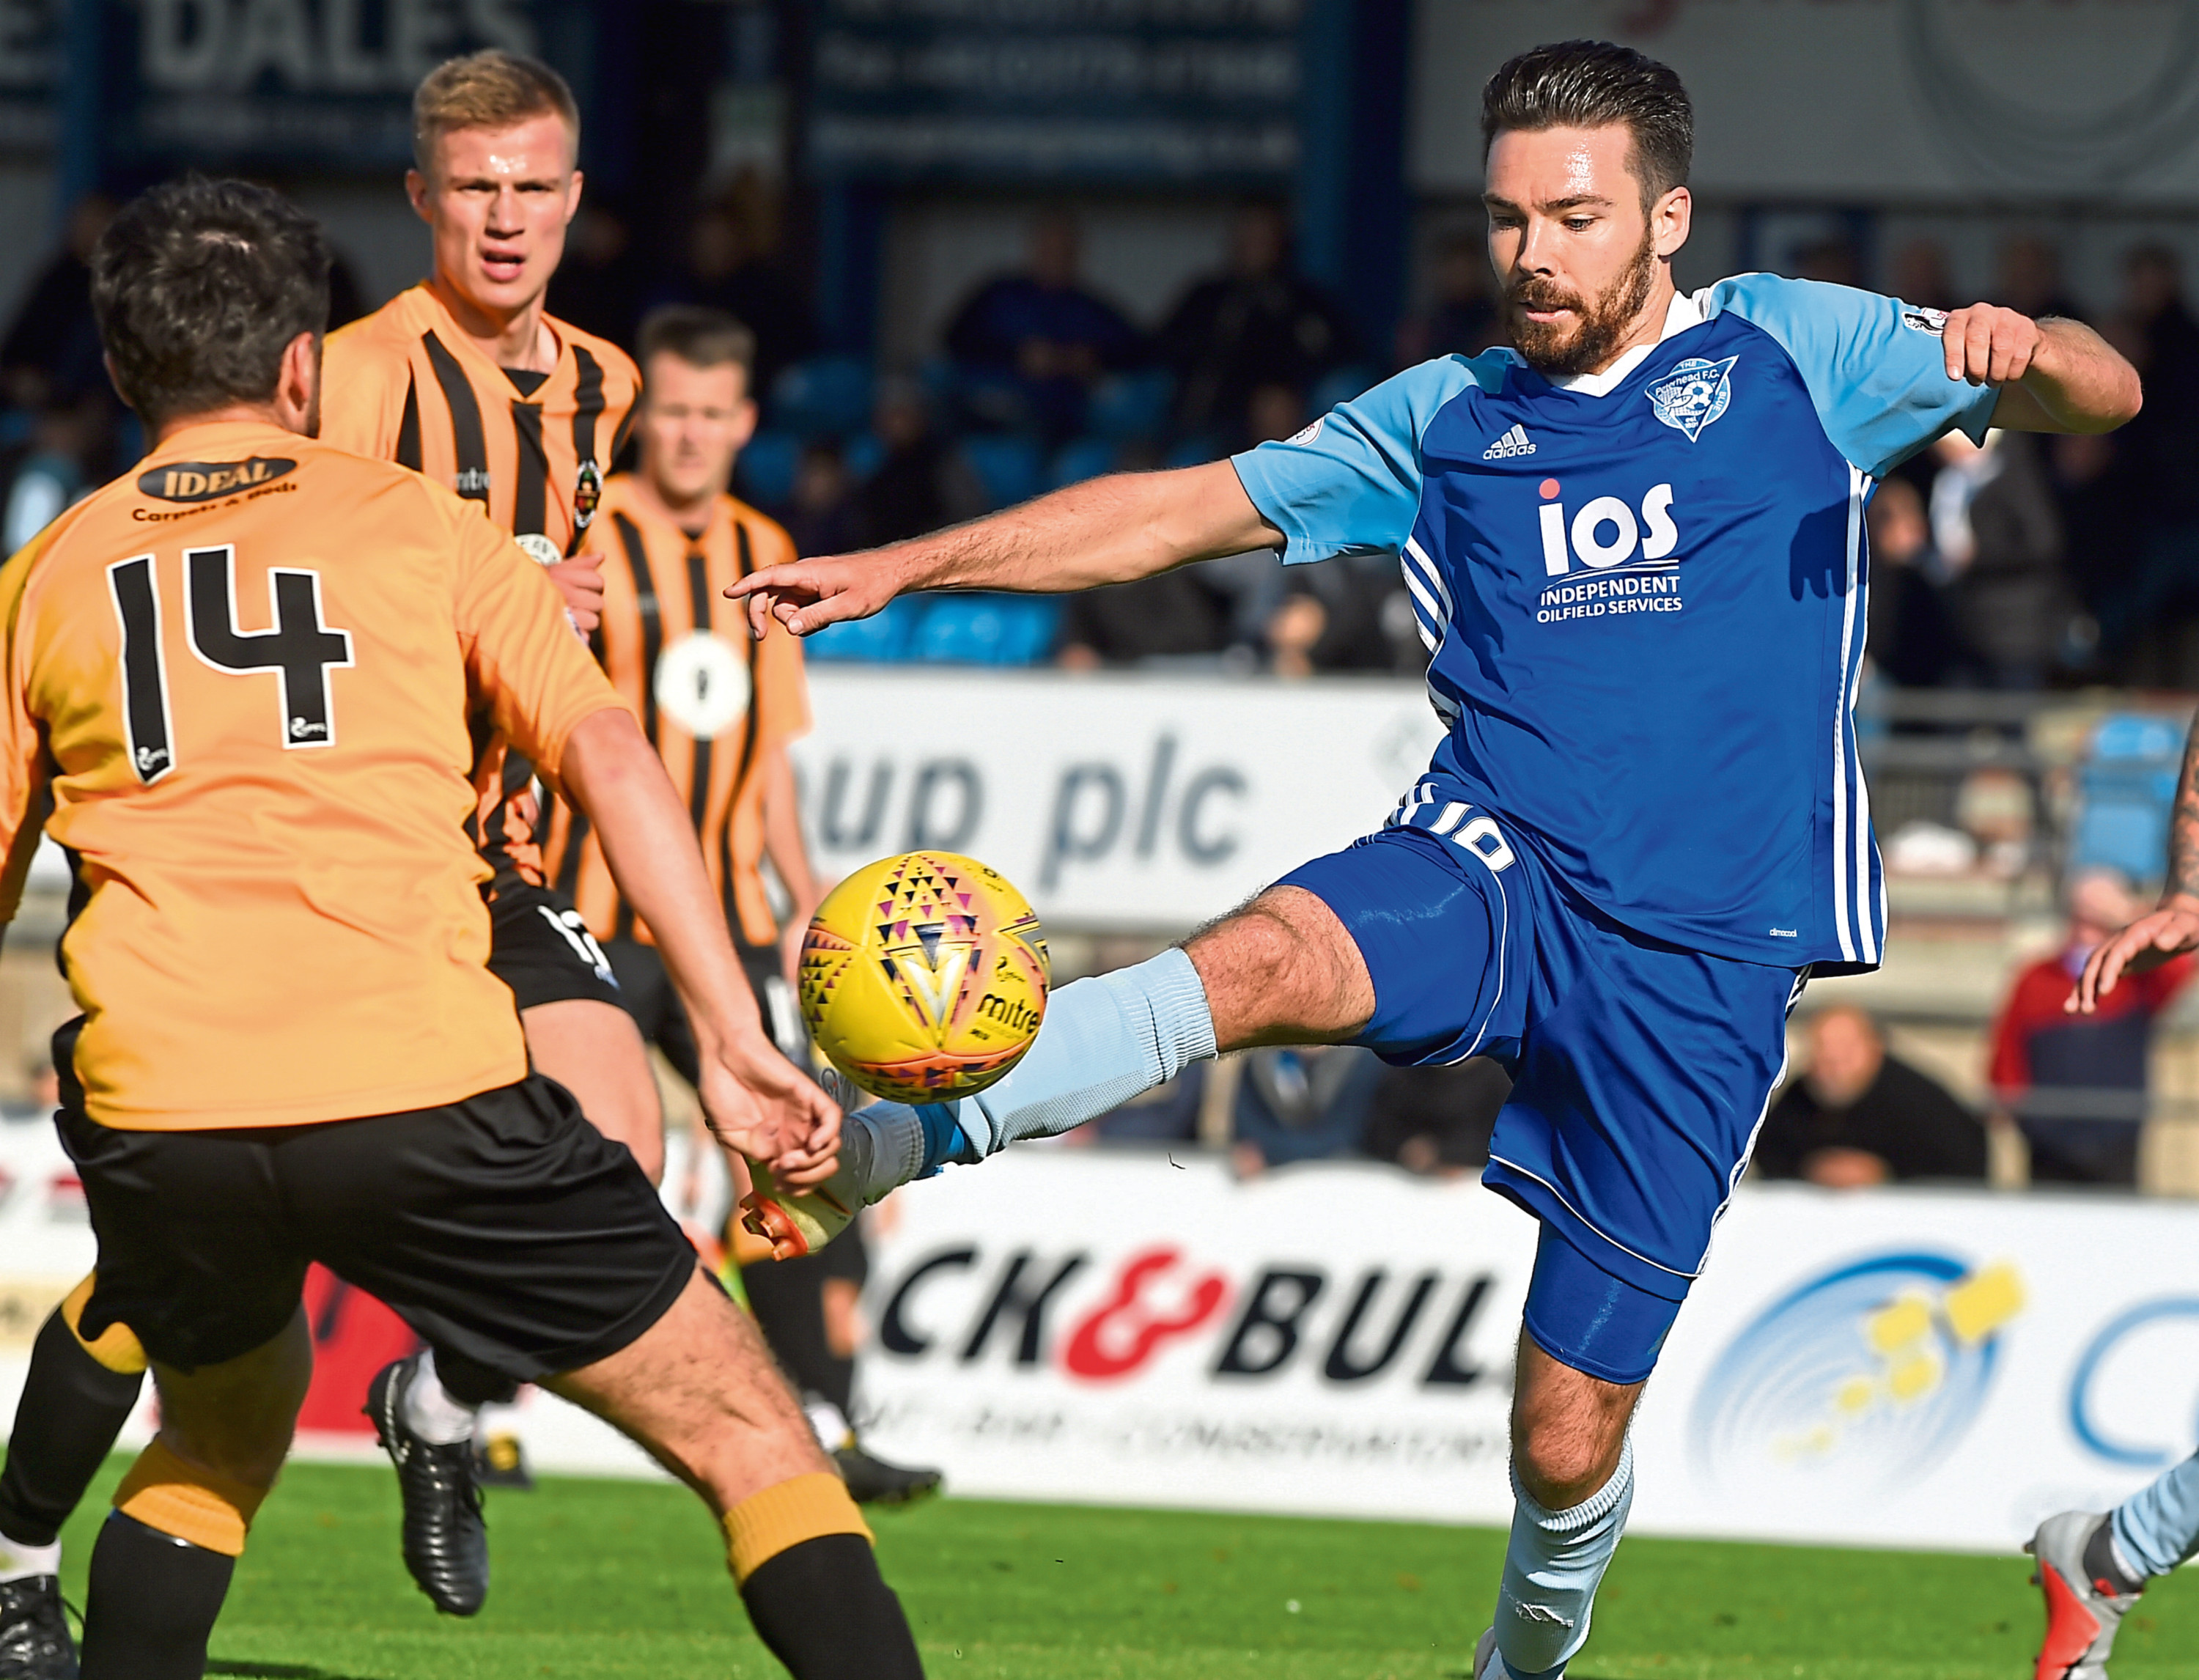 Ryan Dow, right, in action for Peterhead.